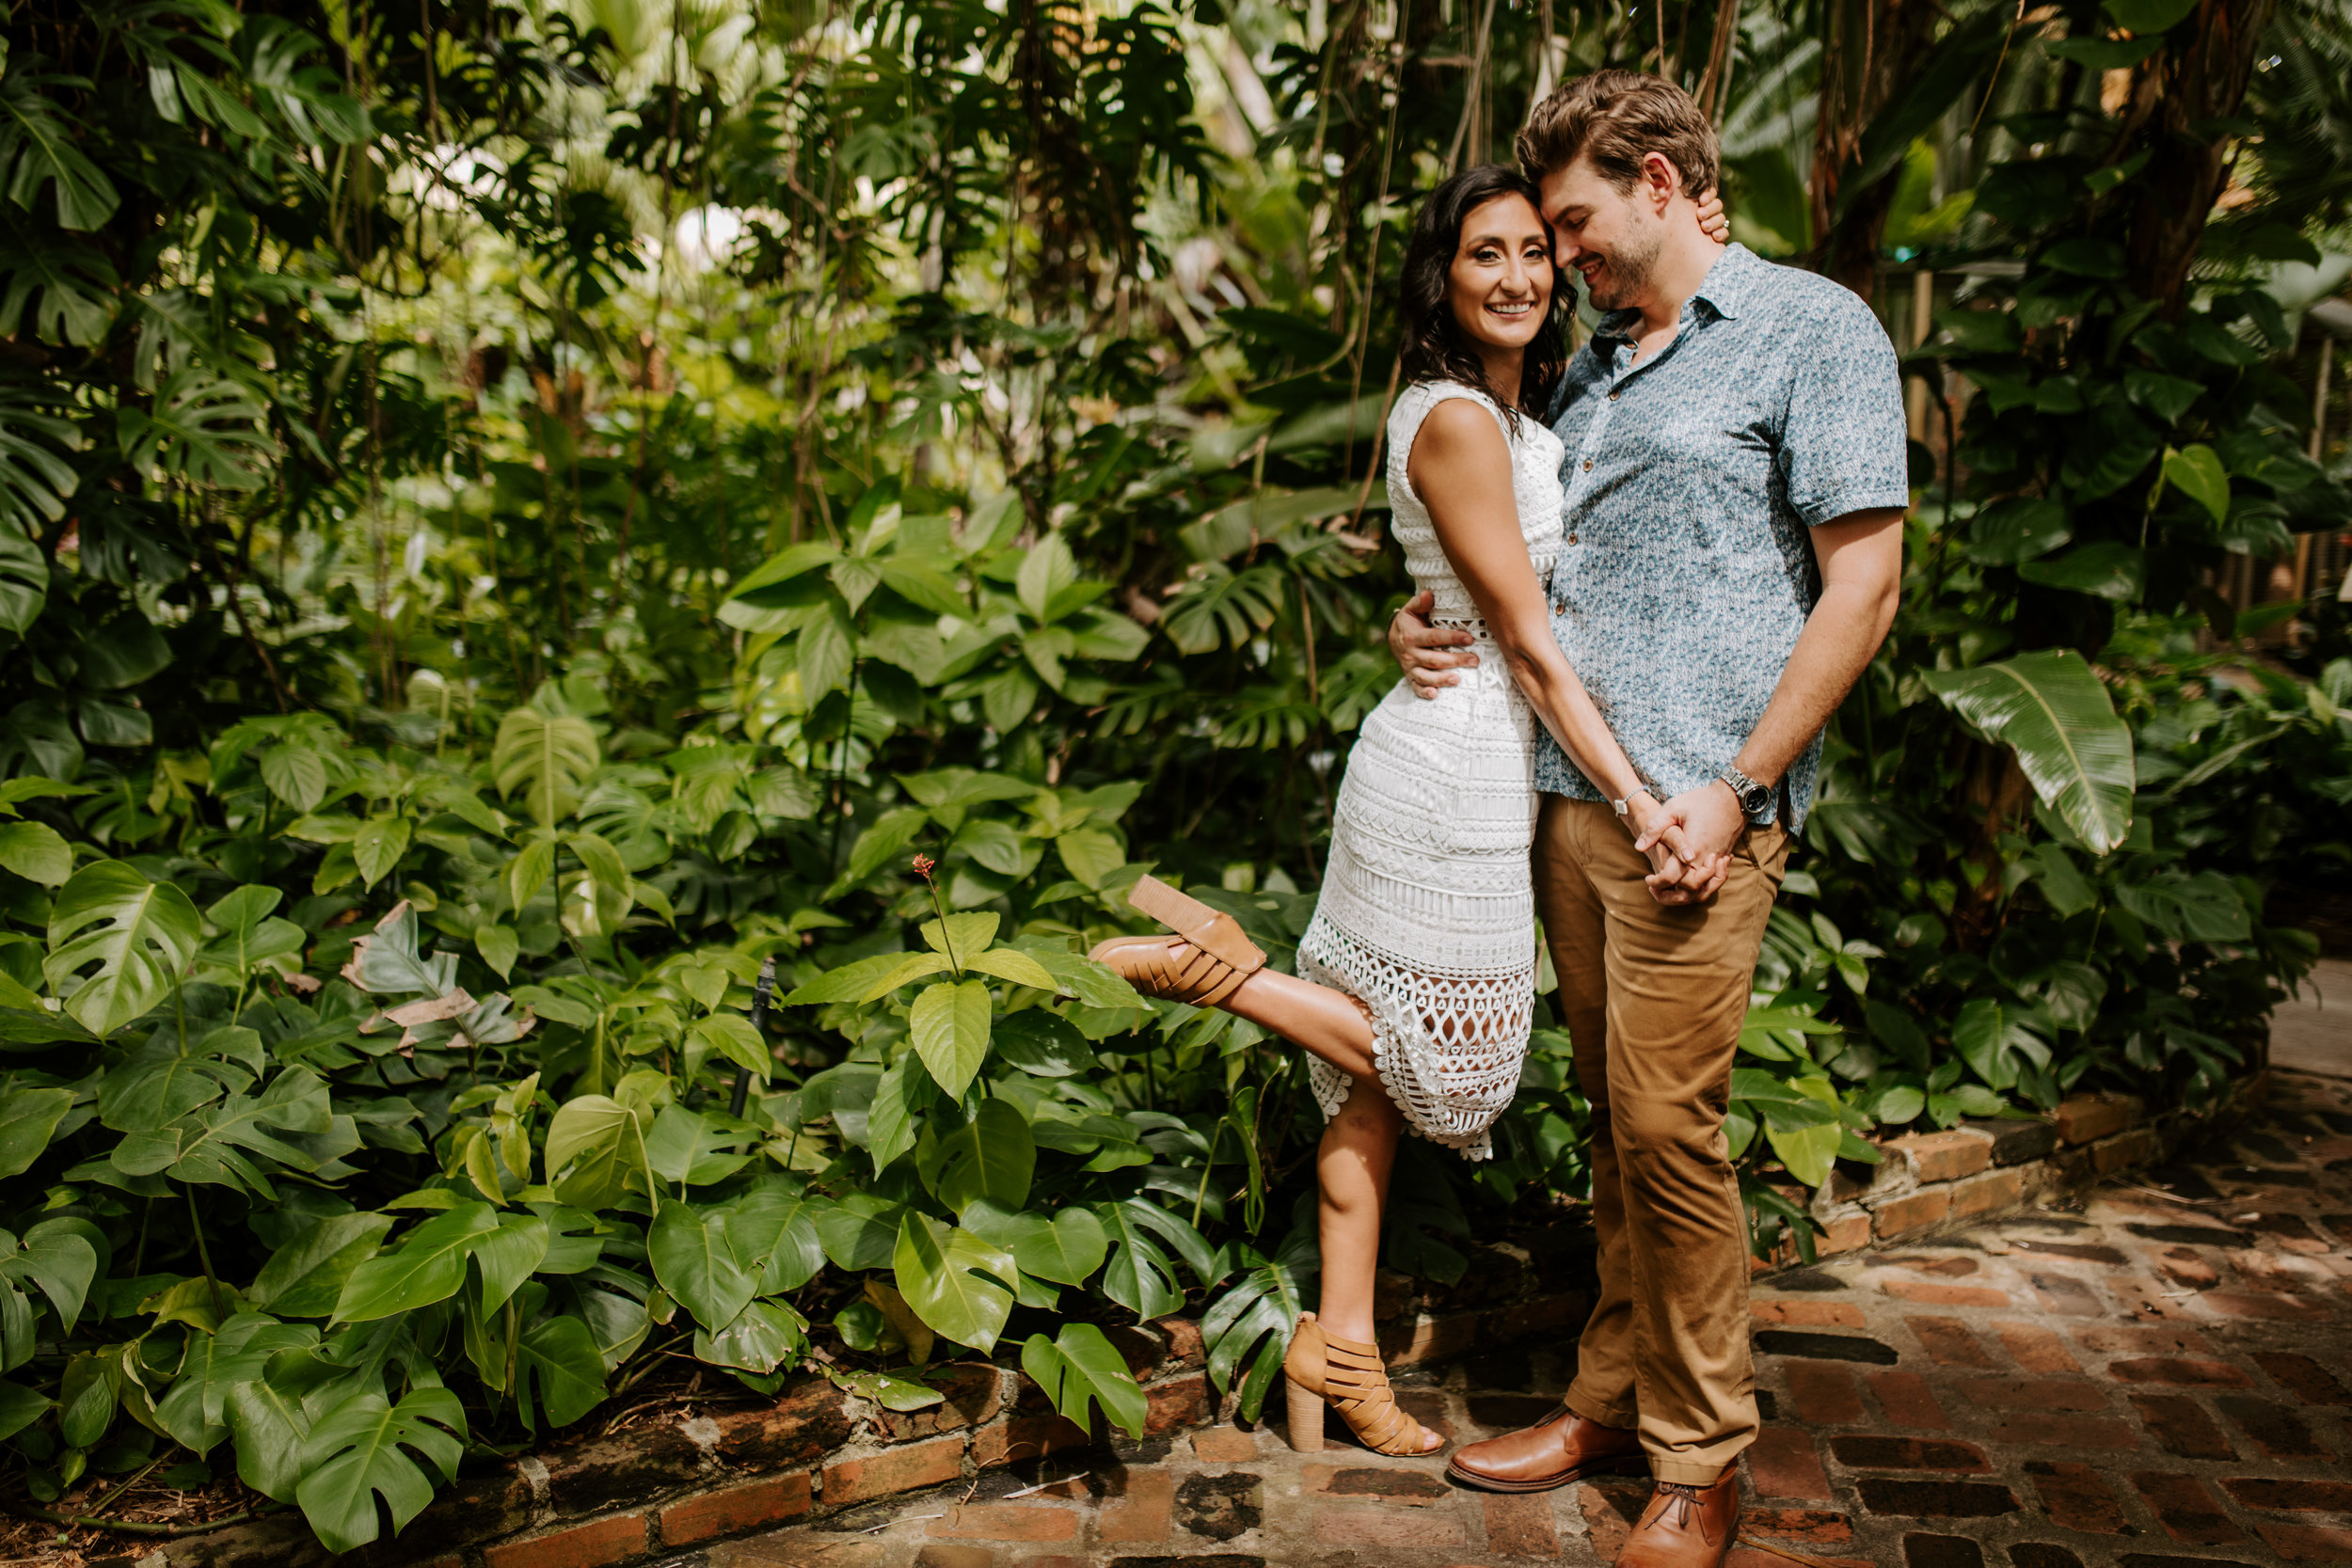 Sunken_Gardens-St_Pete-Allie_+_Eric-Engagement-Native_Expressions-323.jpg